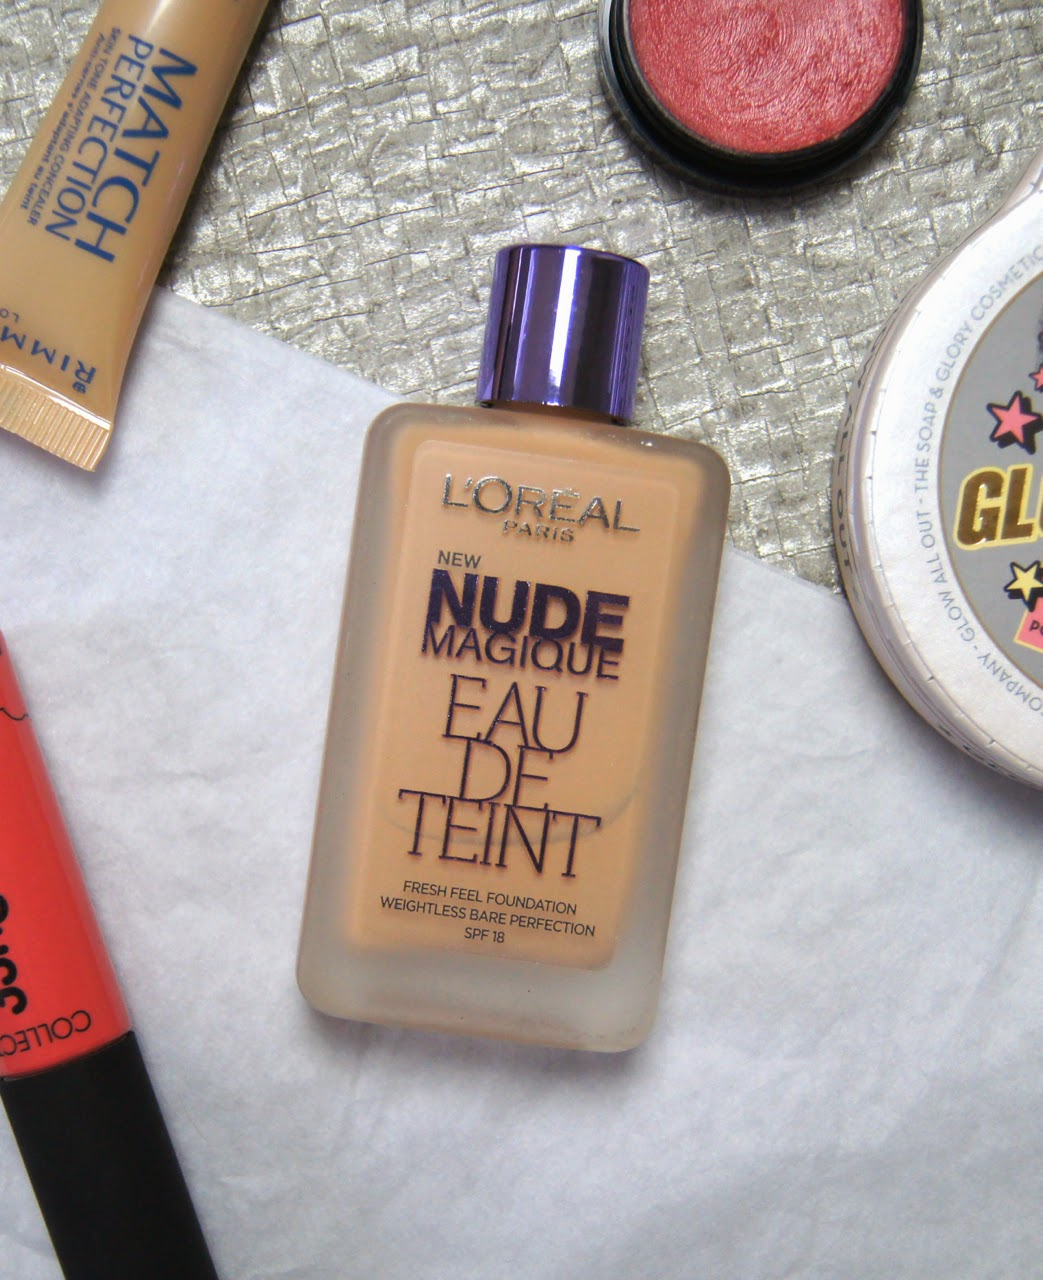 l'oreal nude magique eau de teint foundation review